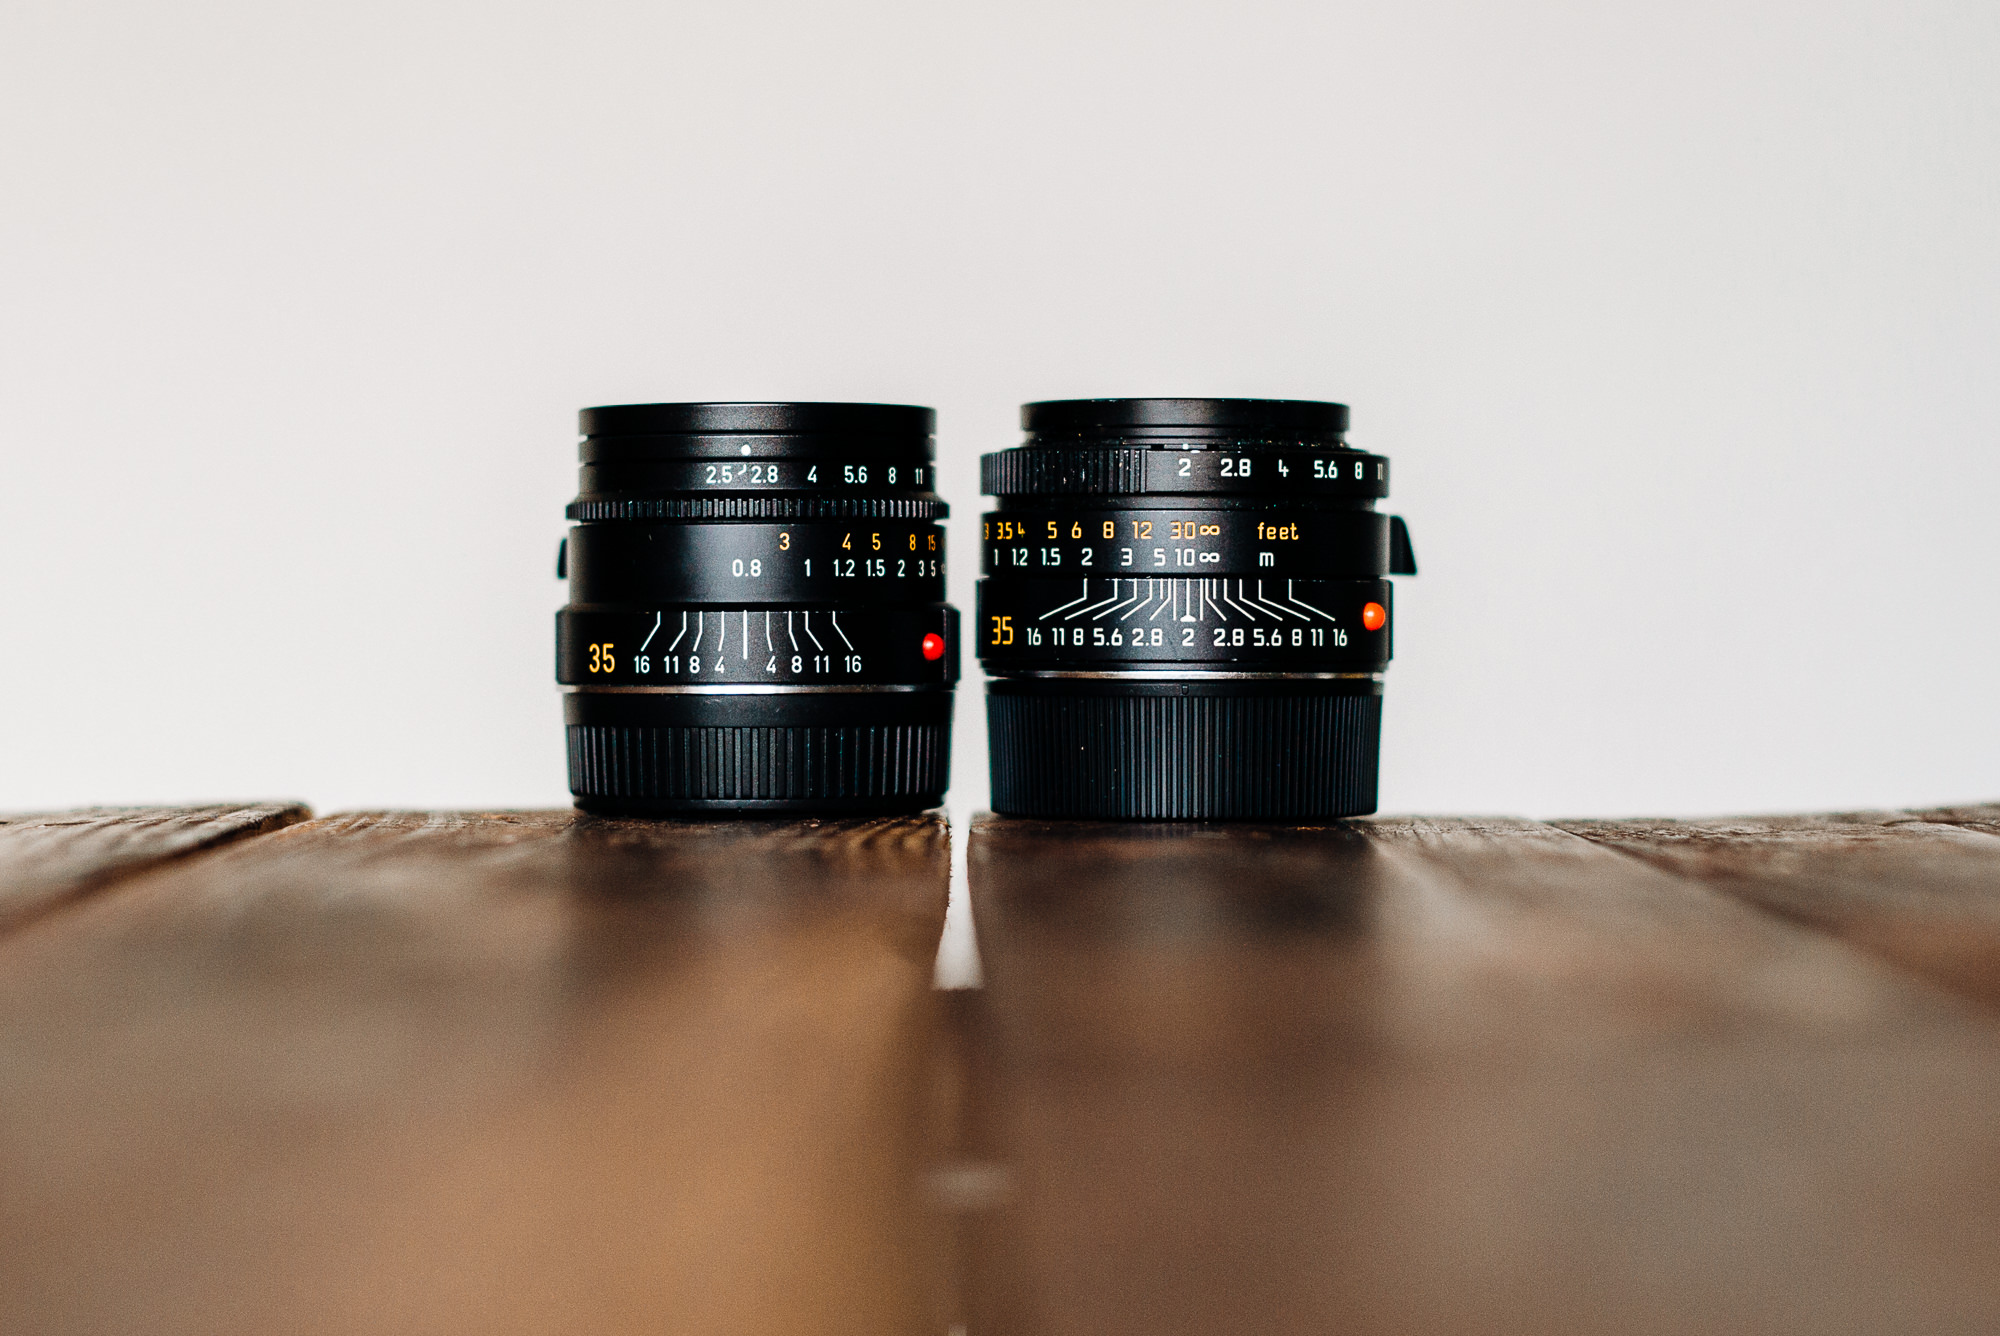 leica 35mm summicron and summarit lenses without hoods